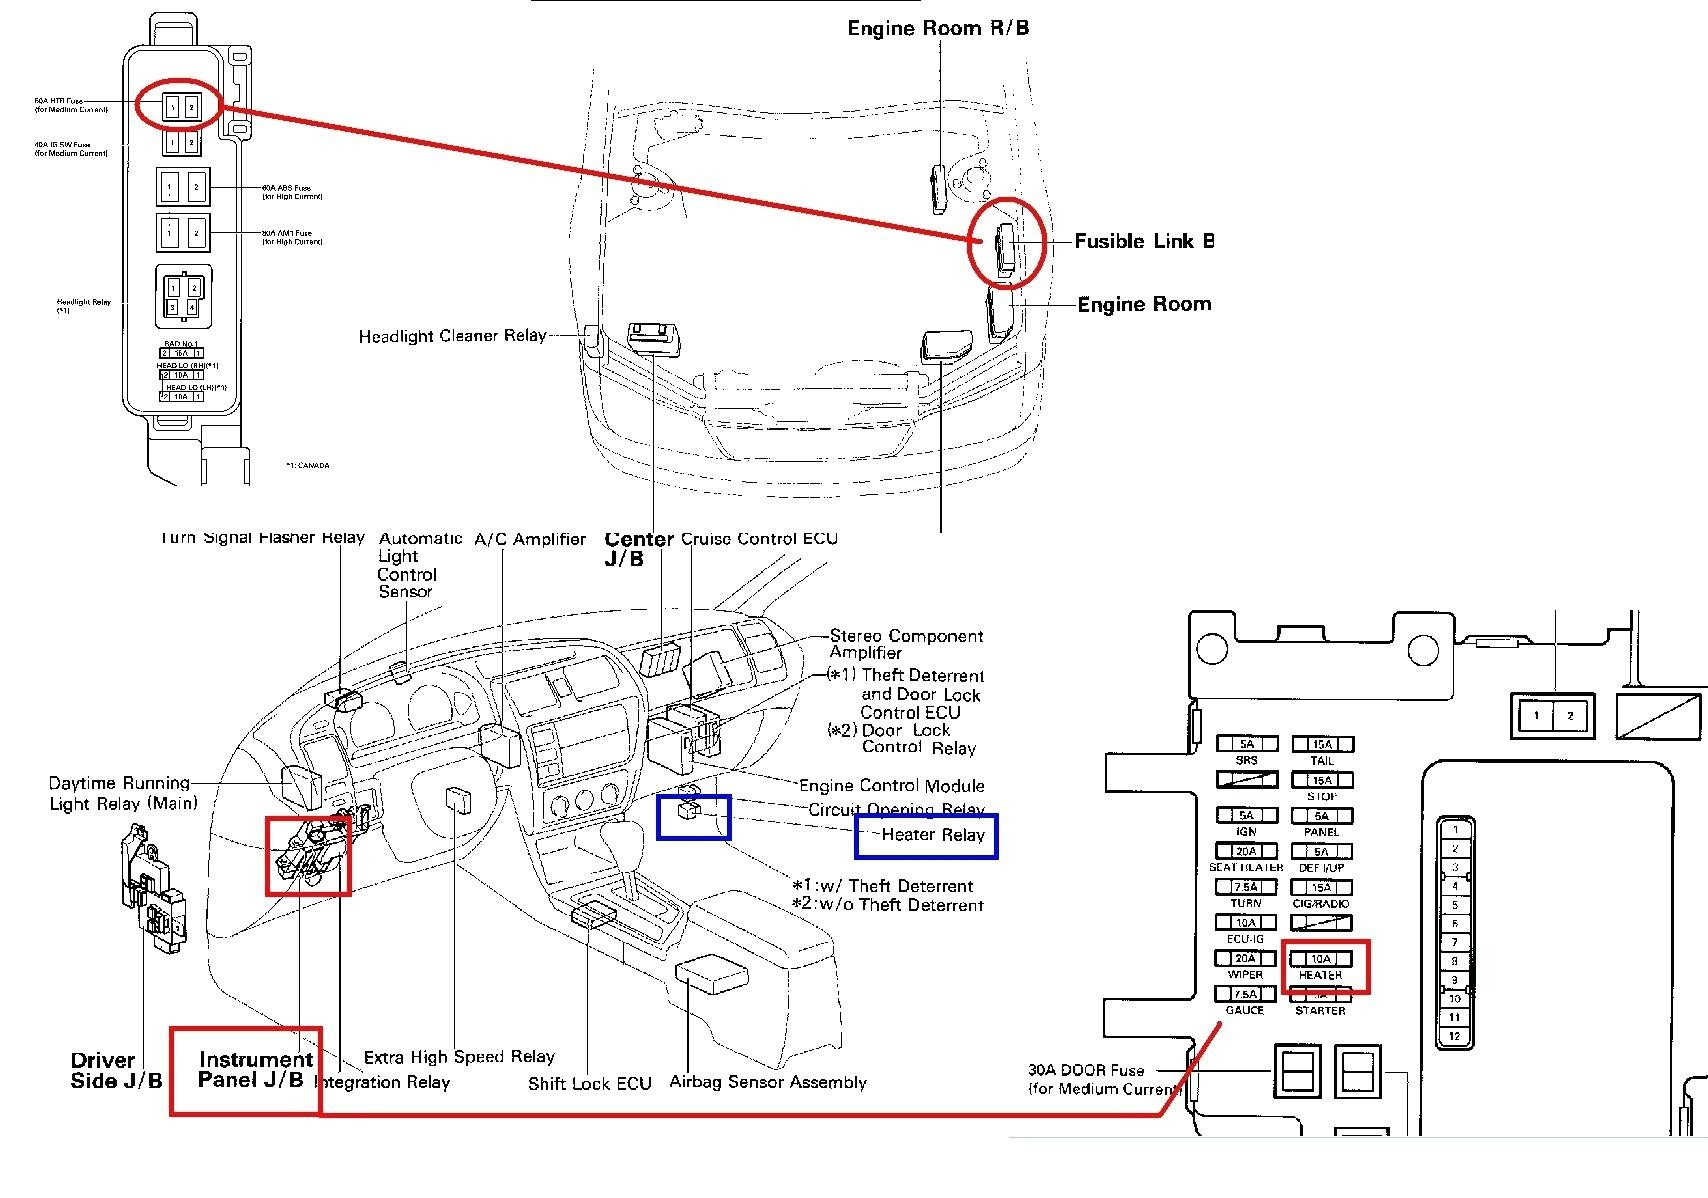 Camry Engine Diagram Wiring Diagram for Trailer Plugs Electronic 2005  toyota Camry Engine Of Camry Engine